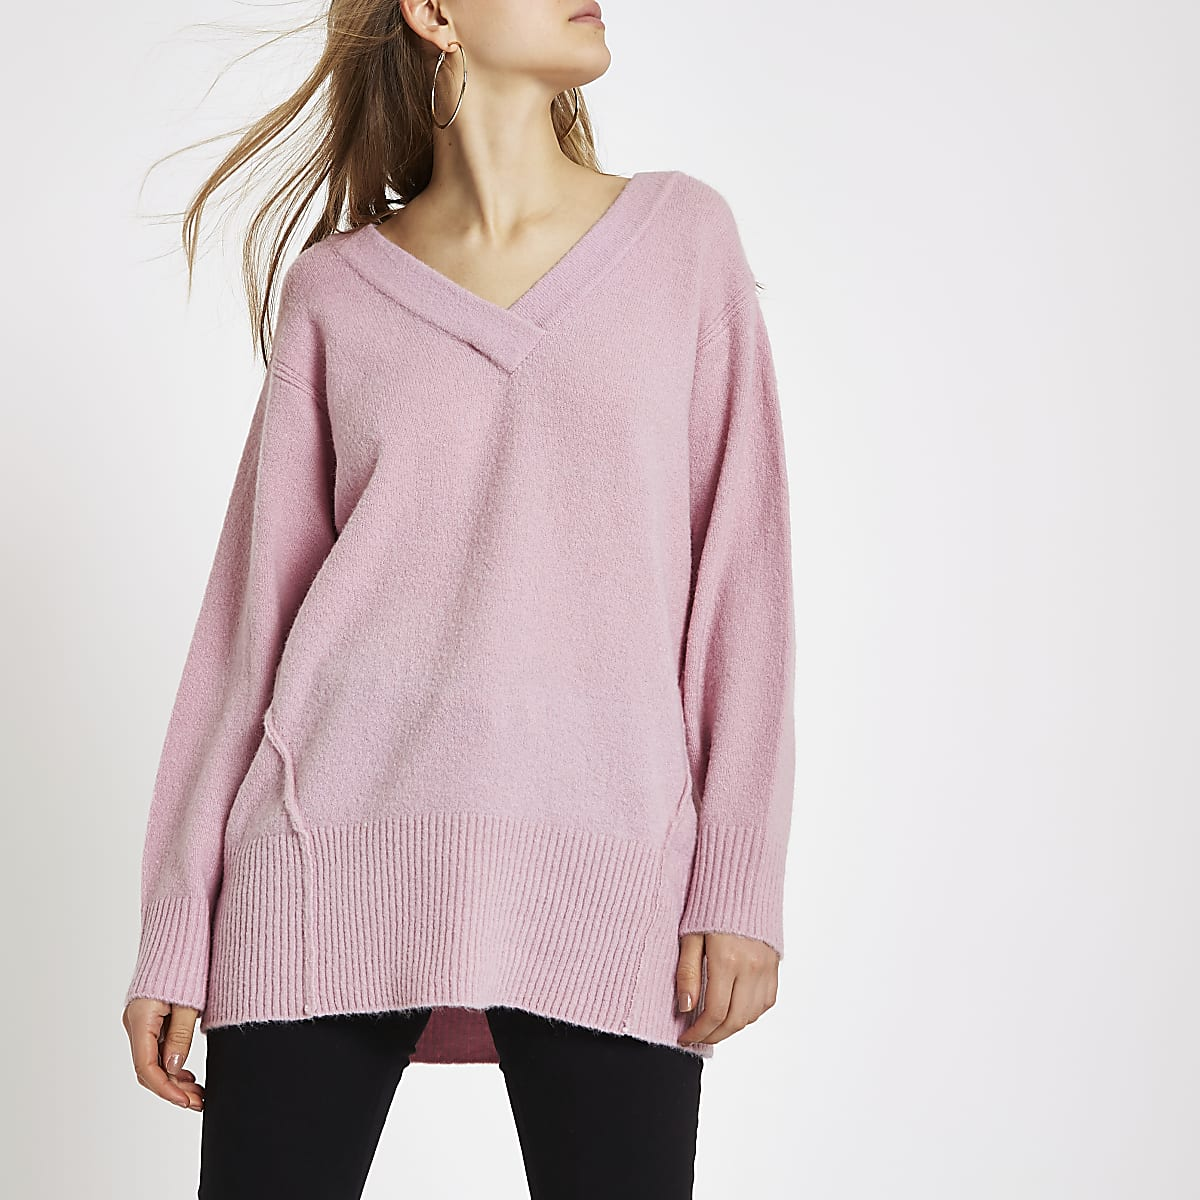 Pink knit V neck sweater